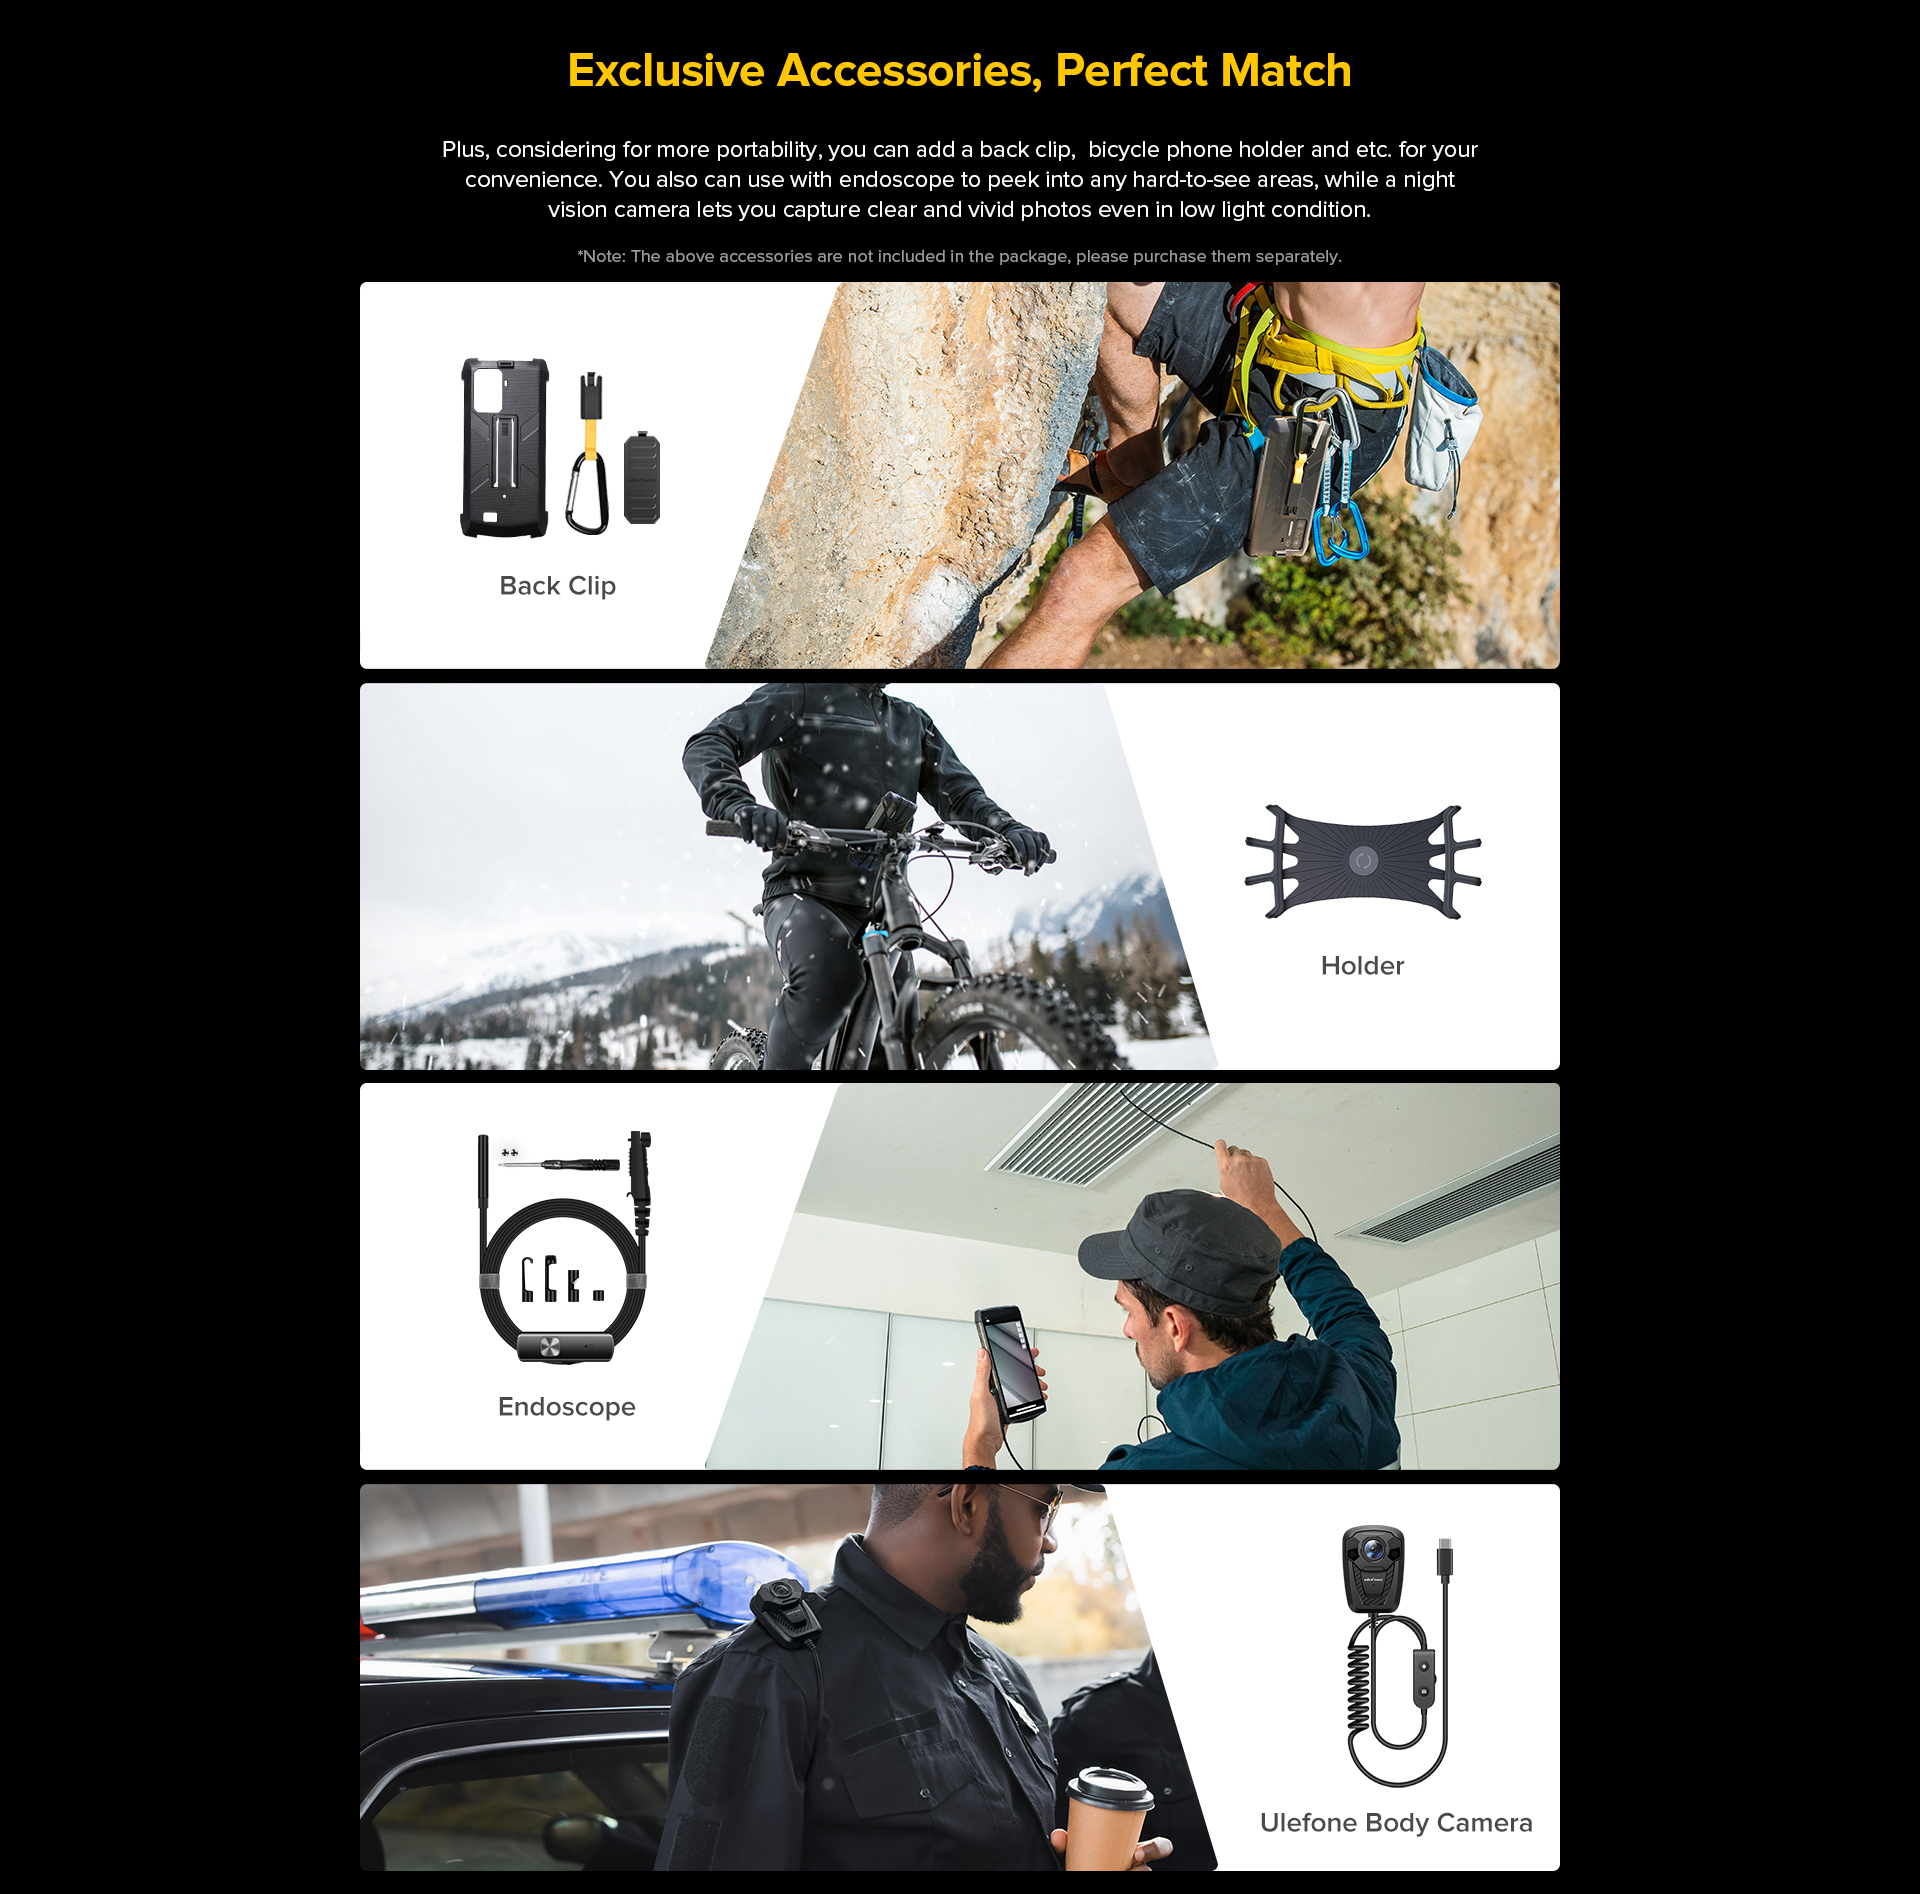 ulefone accessories and features